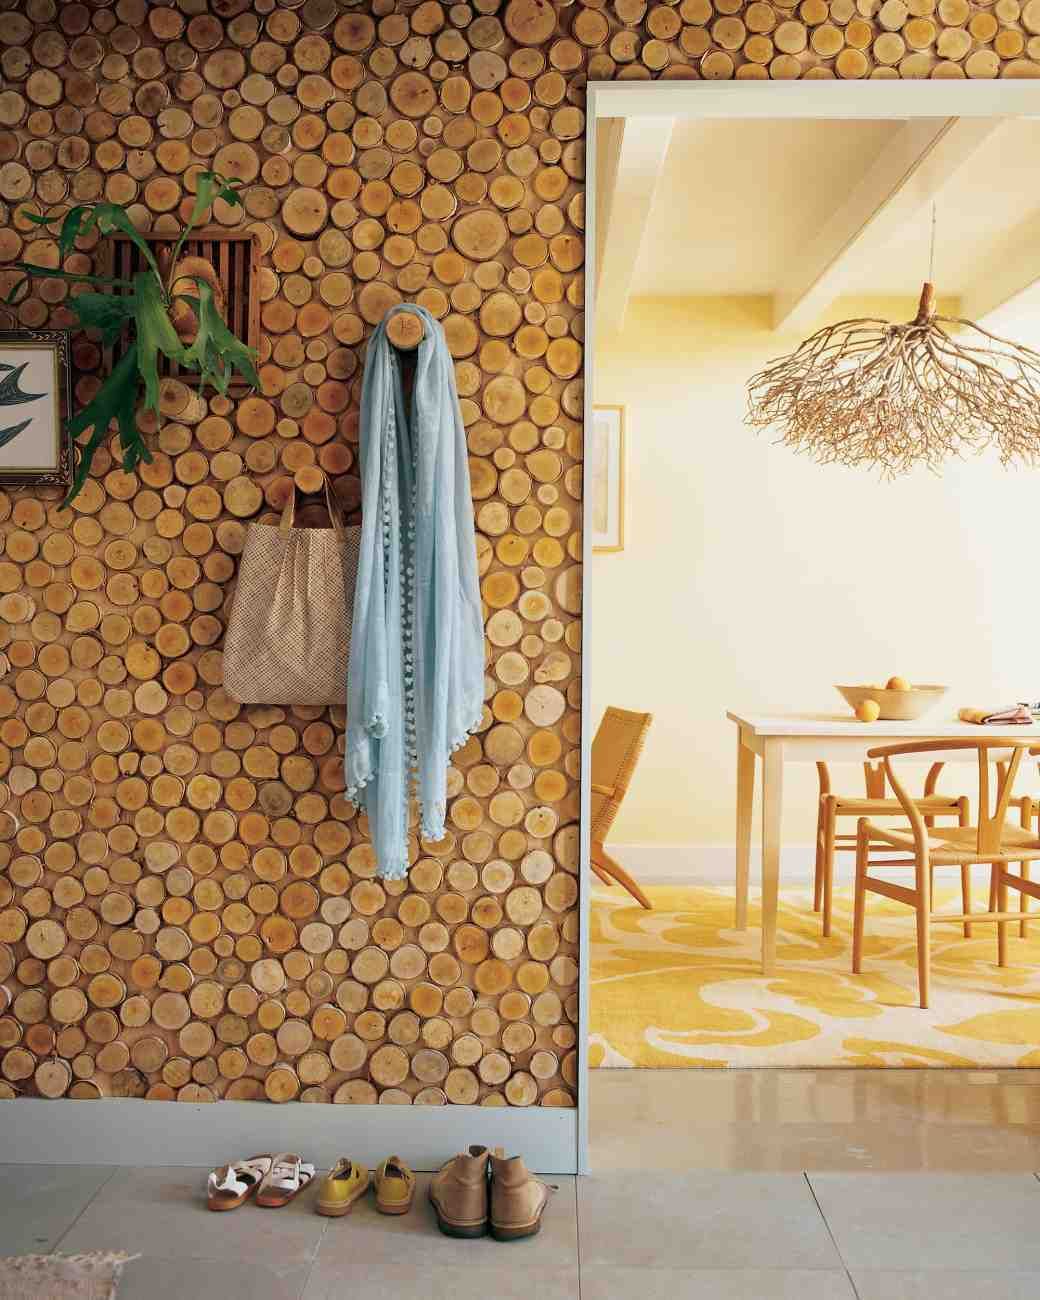 Wall Art: un mosaico in legno di betulla - Design Miss